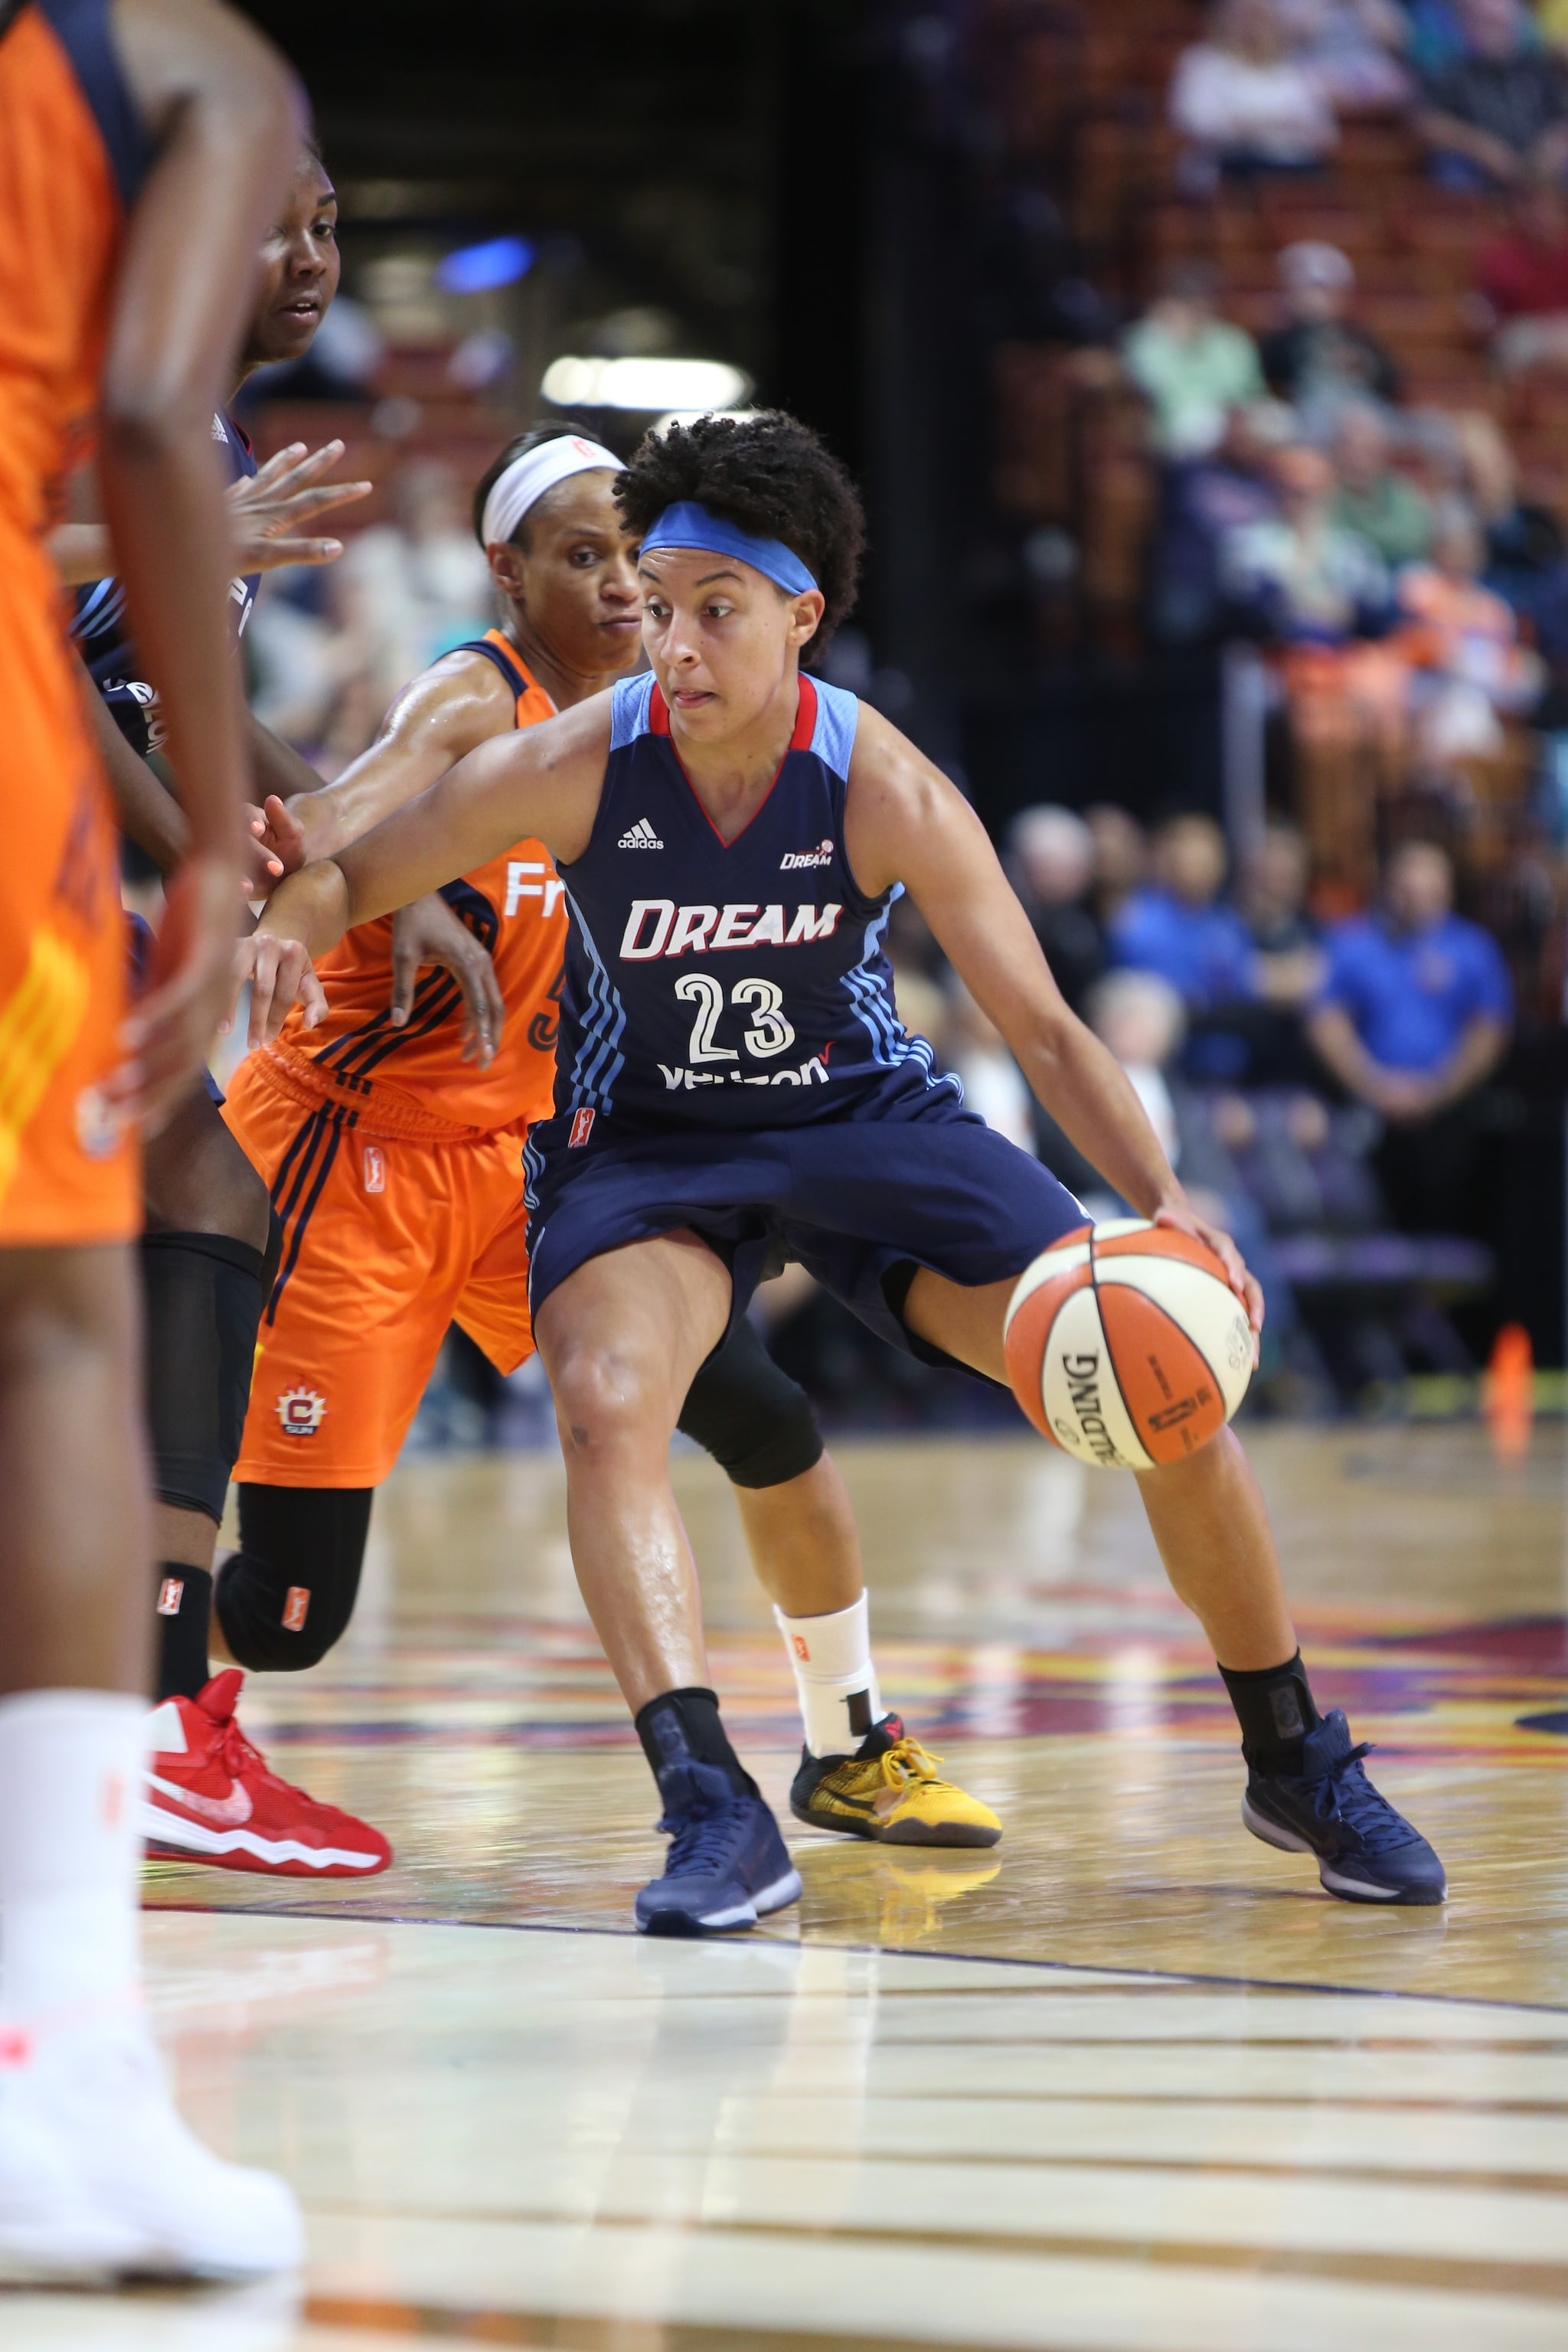 UNCASVILLE, CT - JUNE 3: Layshia Clarendon #23 of the Atlanta Dream handles the ball against the Connecticut Sun on June 3, 2016 at Mohegan Sun Arena in Uncasville, CT. NOTE TO USER: User expressly acknowledges and agrees that, by downloading and or using this Photograph, user is consenting to the terms and conditions of the Getty Images License Agreement. Mandatory Copyright Notice: Copyright 2016 NBAE (Photo by Chris Marion/NBAE via Getty Images)